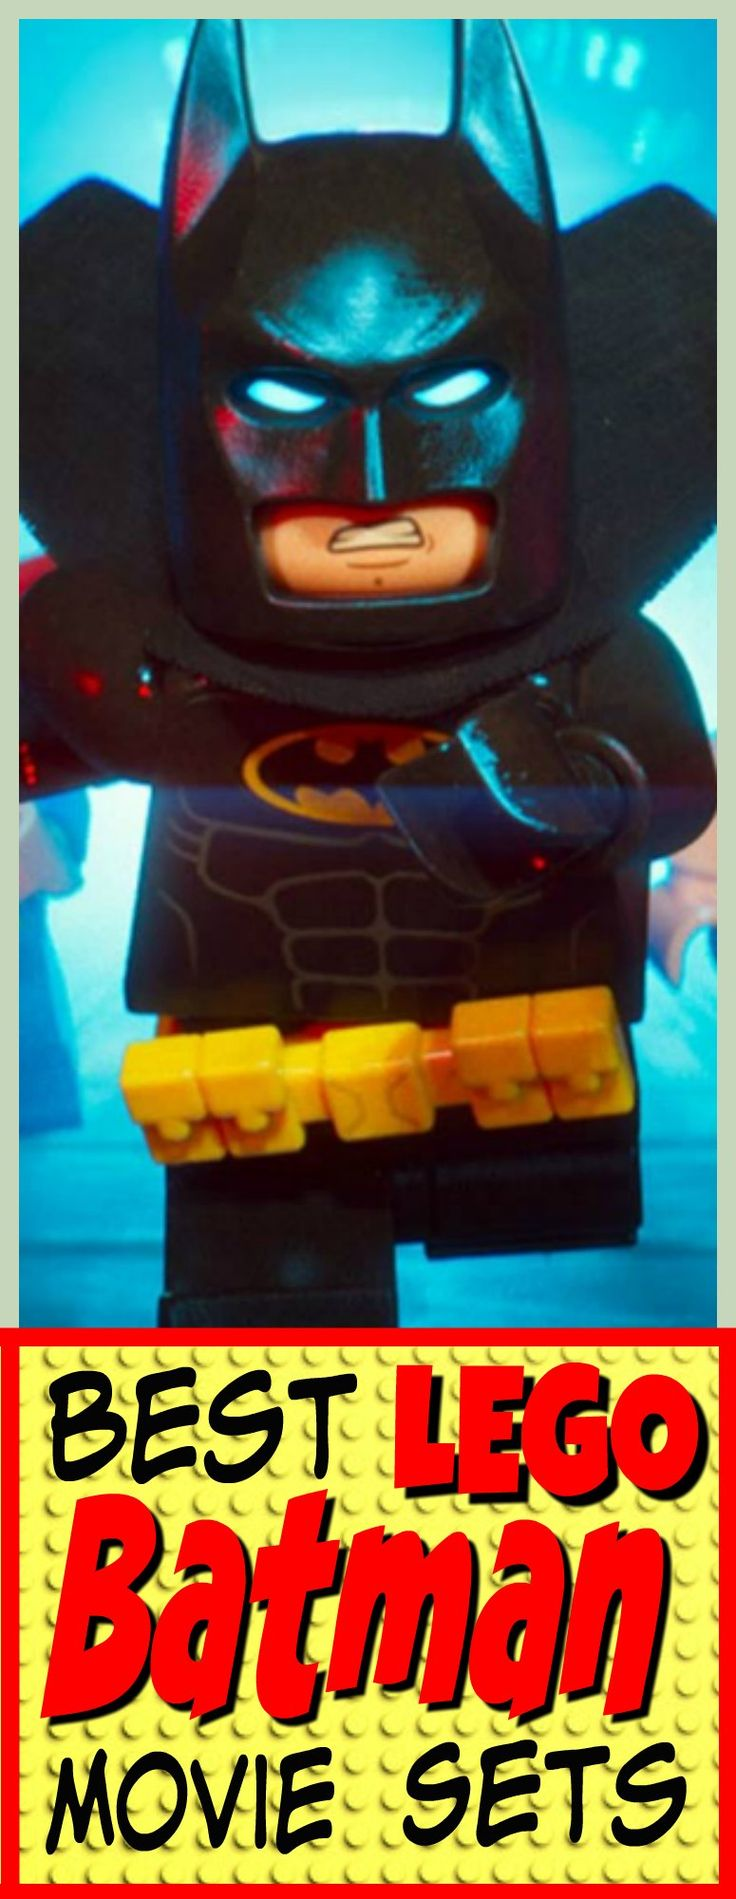 Best Lego Batman Movie Sets -  Check out all the new 2017 LEGO sets that go with the new LEGO Batman movie. So many great sets. My grand sons want them all.